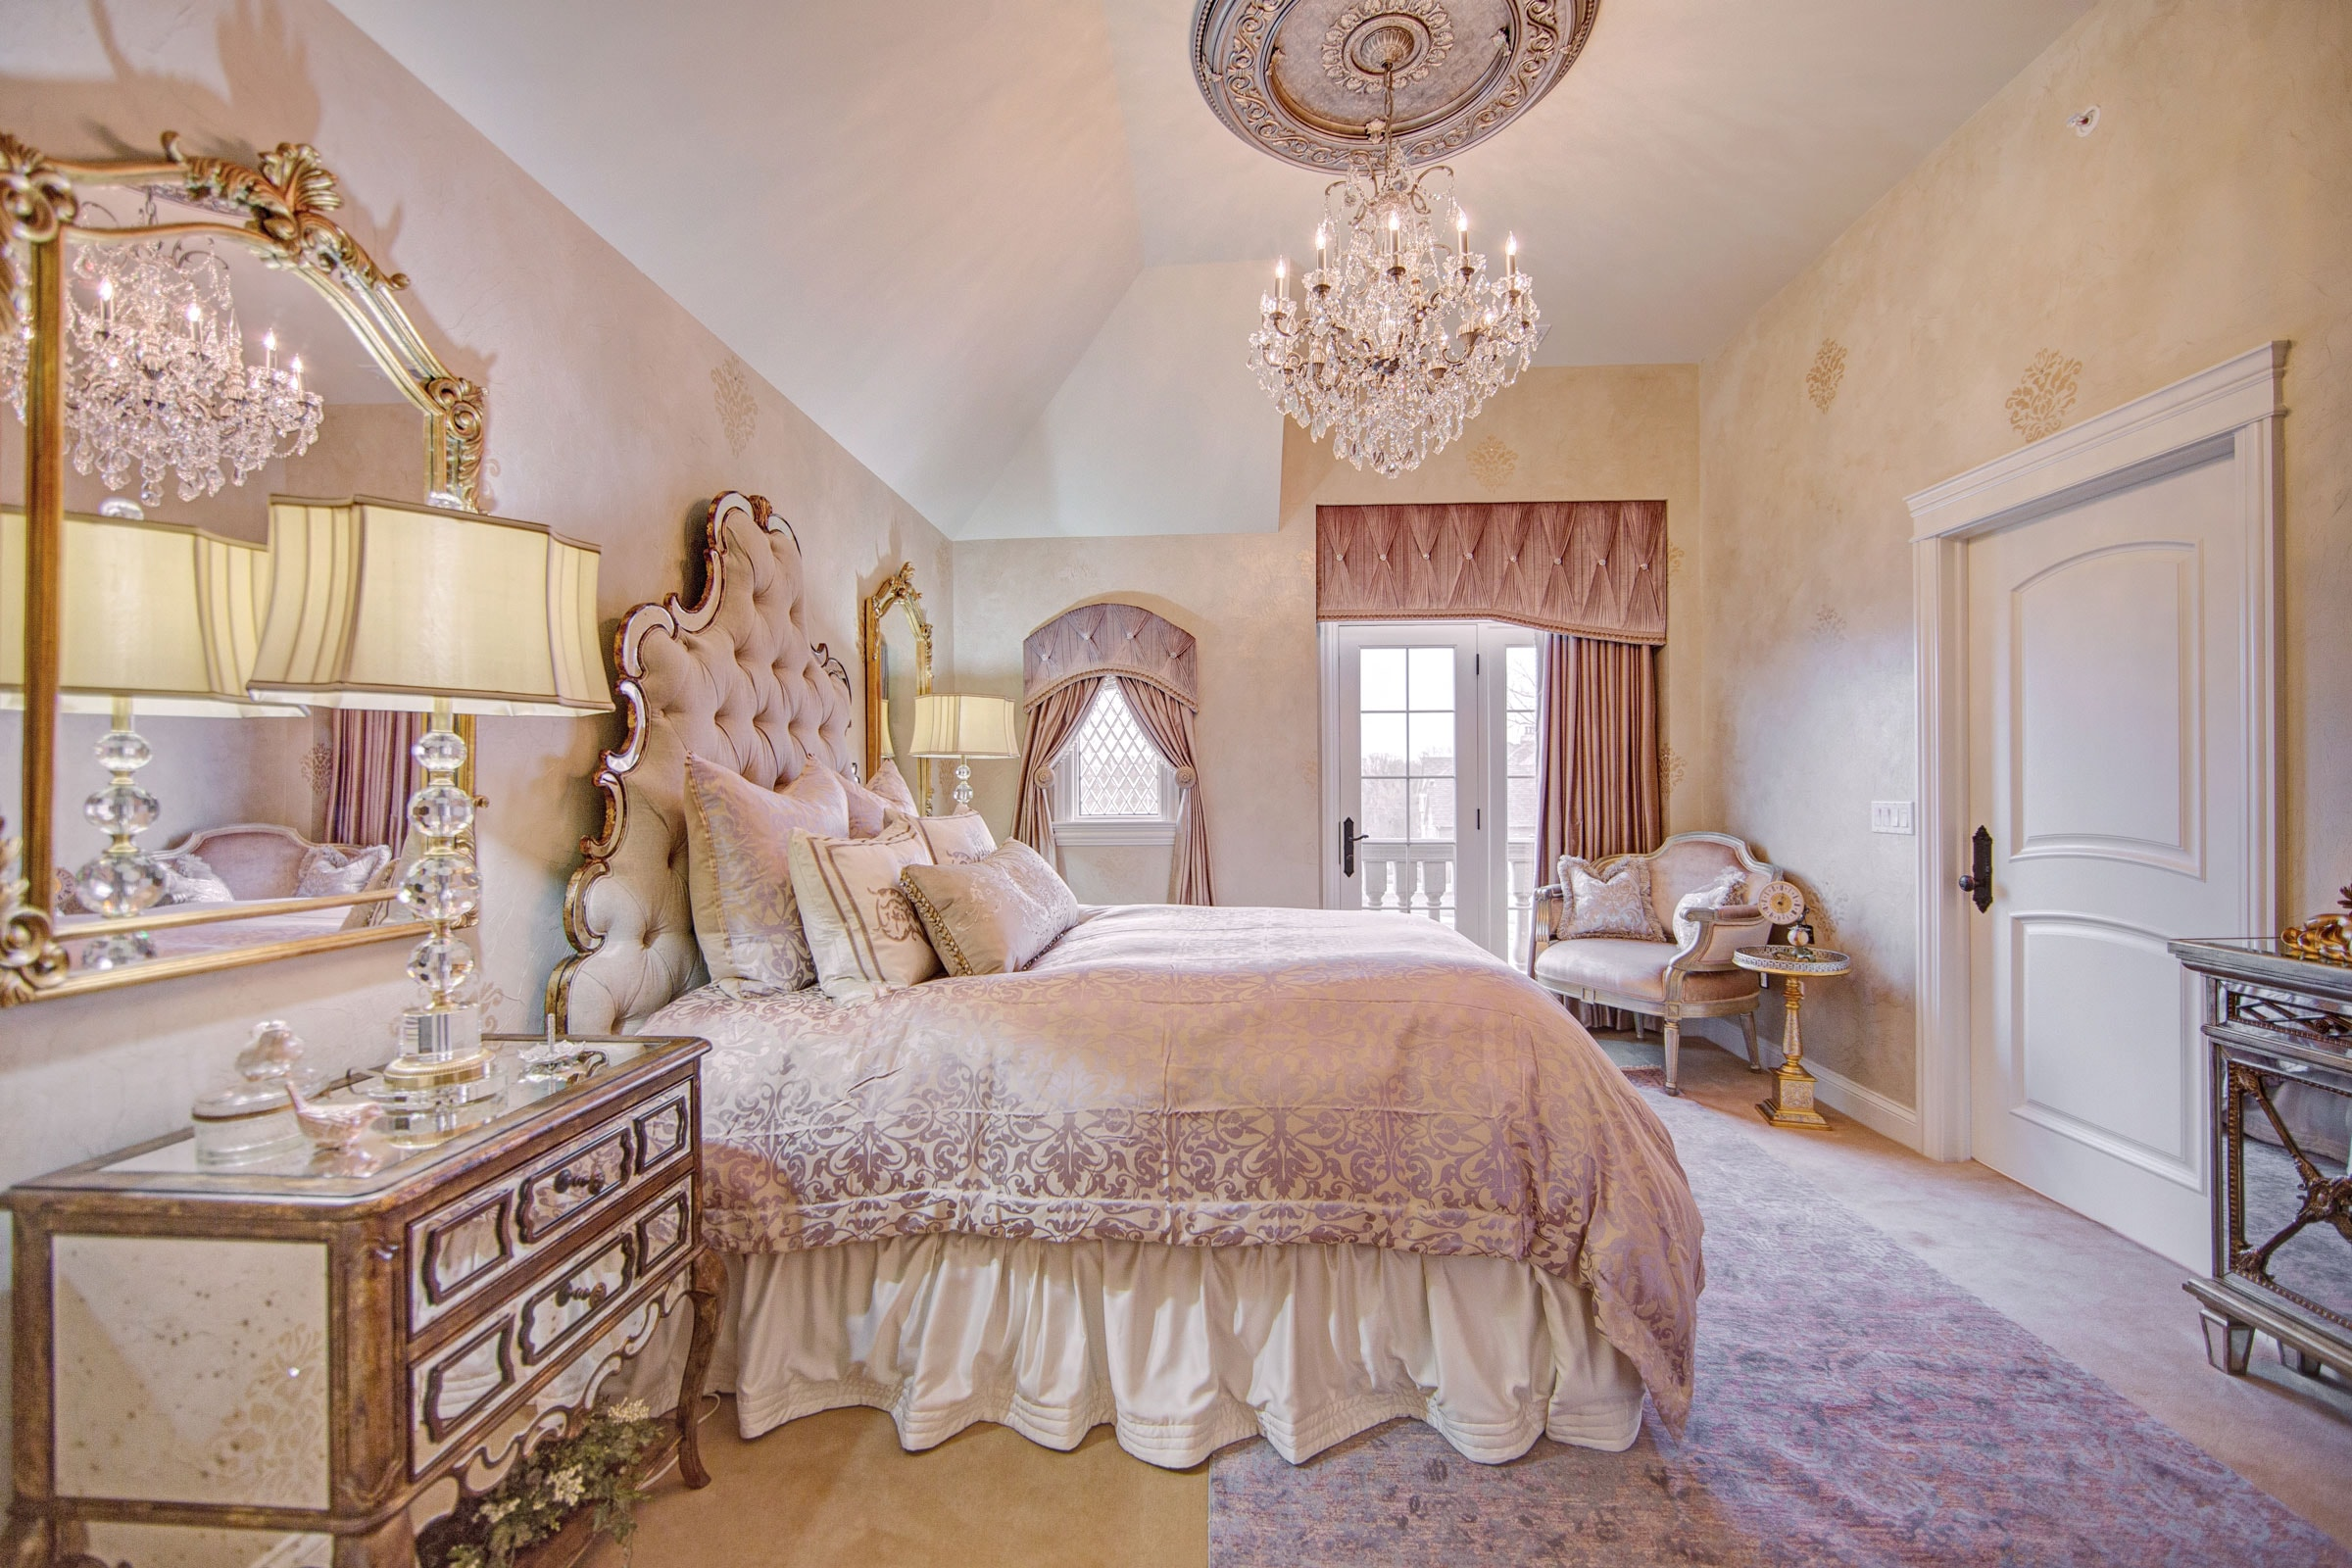 Luxury-Girls-Bedroom-Interior-Design on Beautiful Rooms For Teenage Girls  id=19259